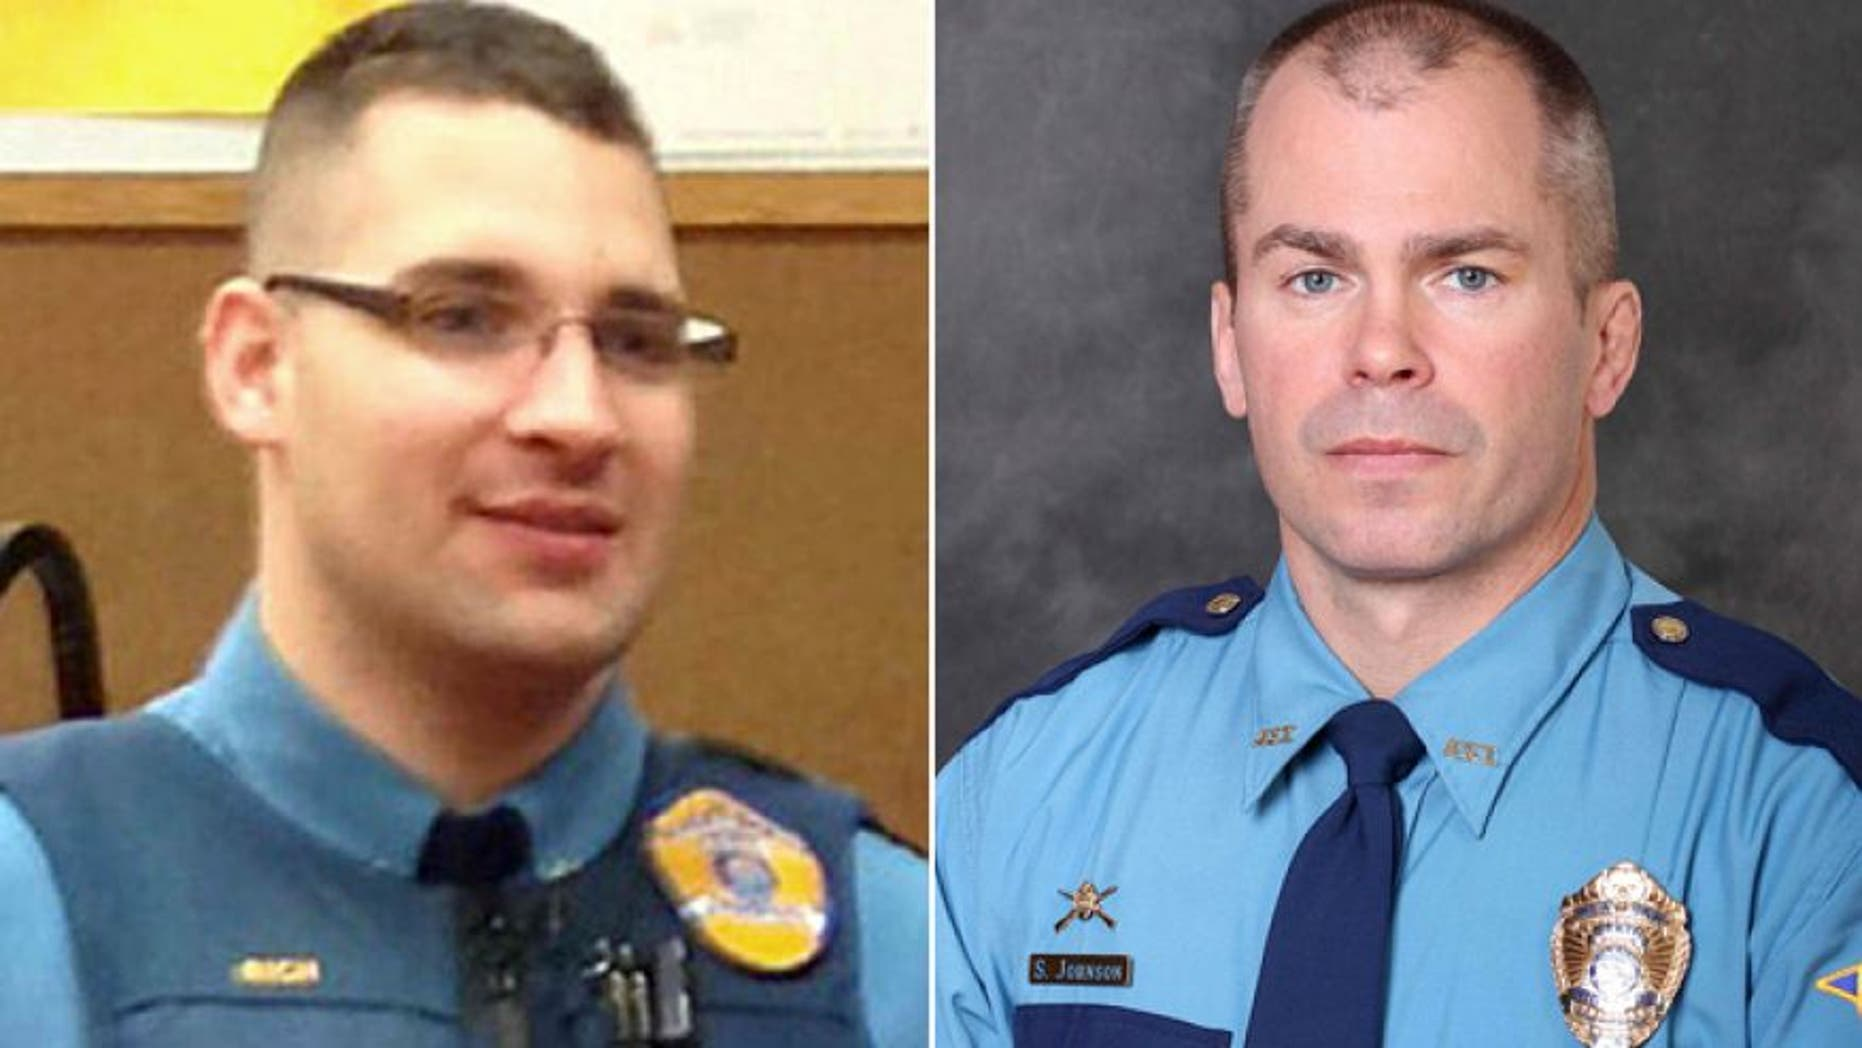 """These undated photos released by the Department of Public Safety show Alaska State Trooper Gabriel """"Gabe"""" Rich and Sgt. Patrick """"Scott"""" Johnson.AP/DEPARTMENT OF PUBLIC SAFETY"""